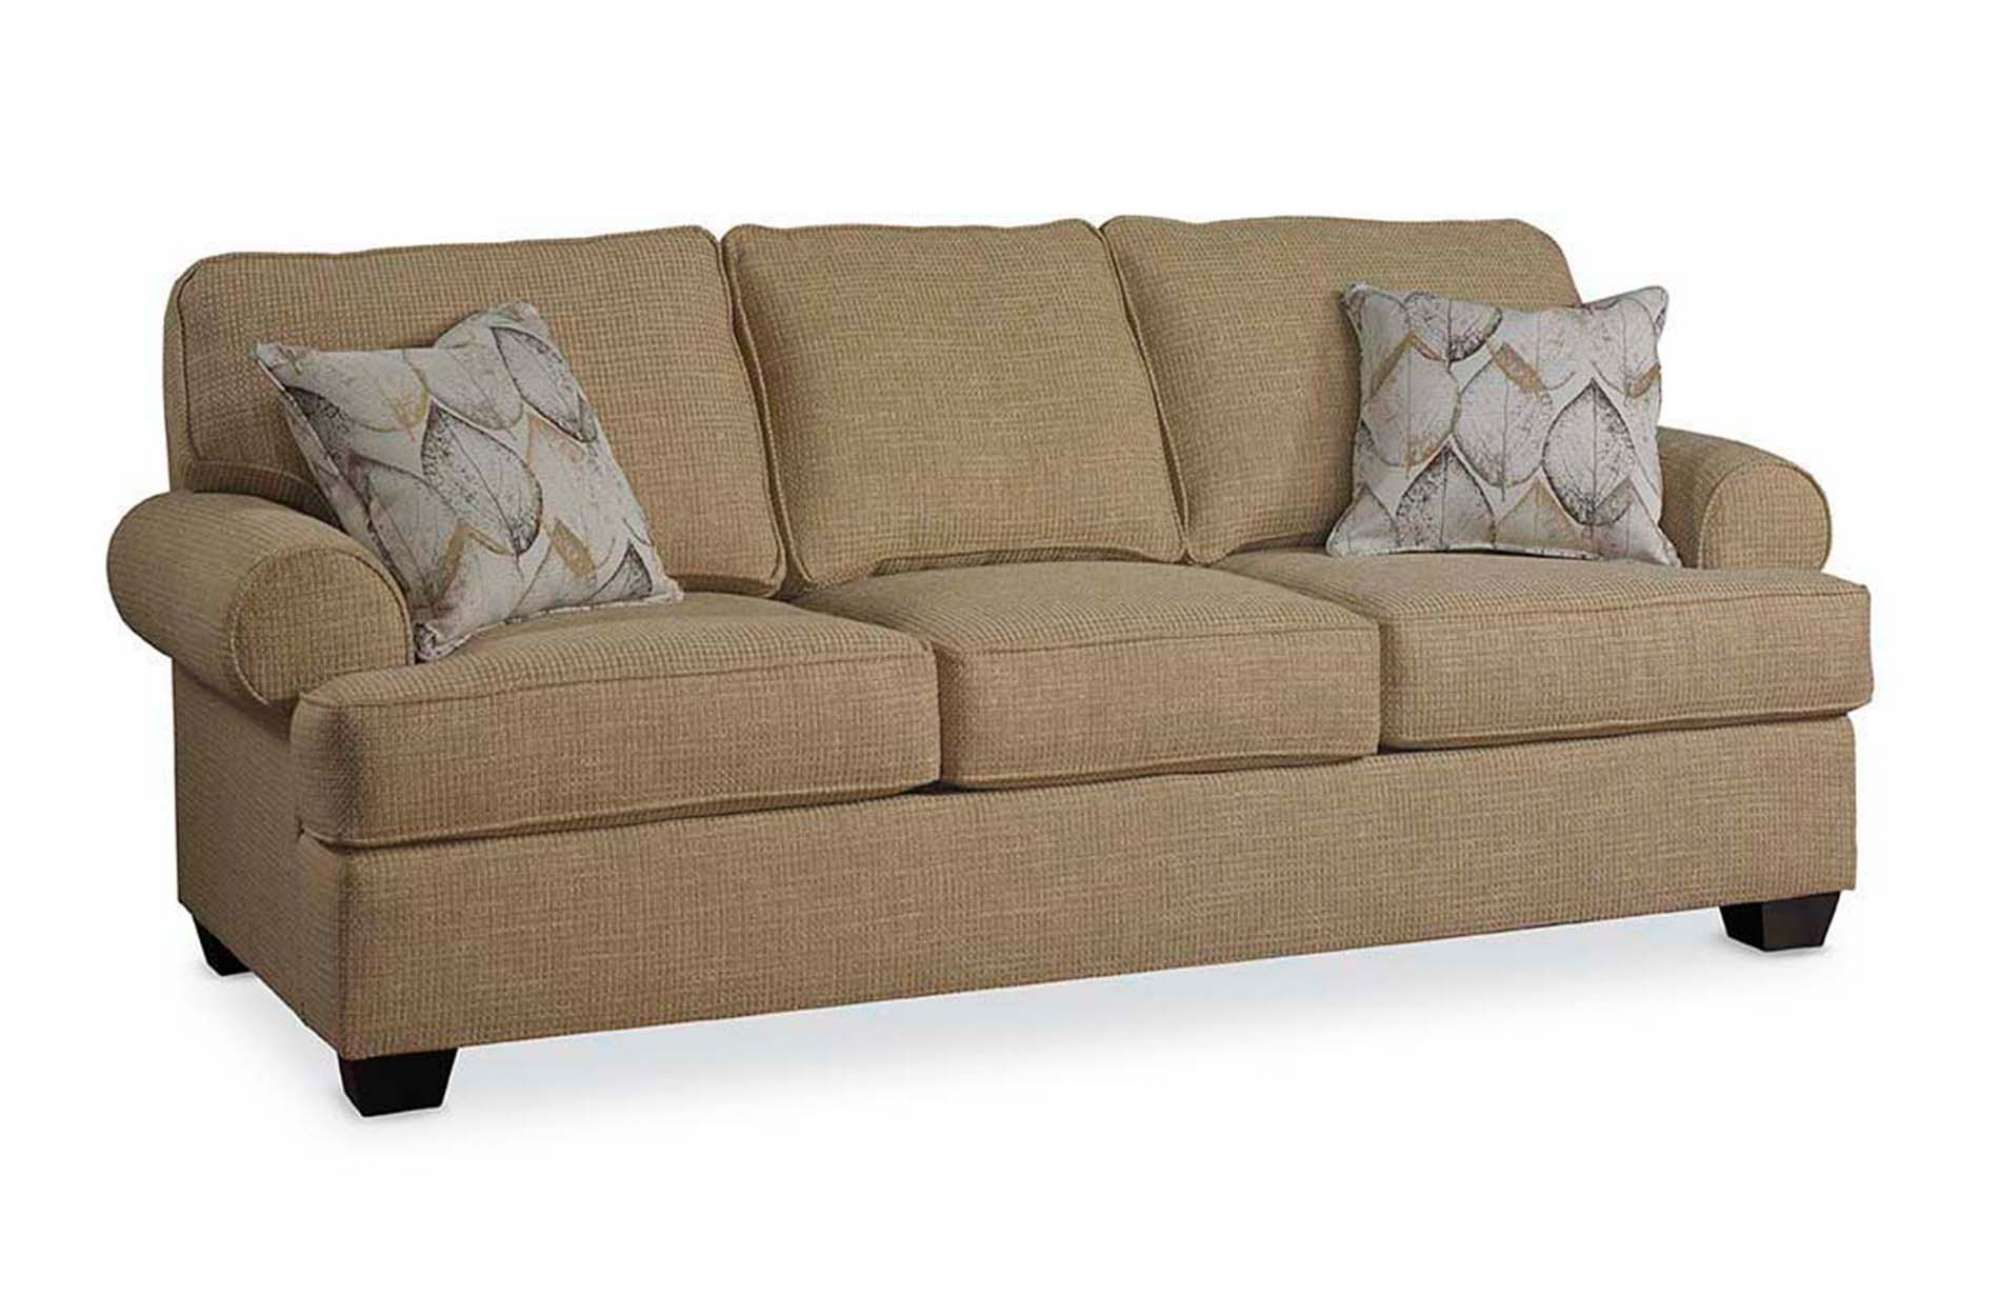 Merveilleux Cabin Sofa   Rowe Furniture